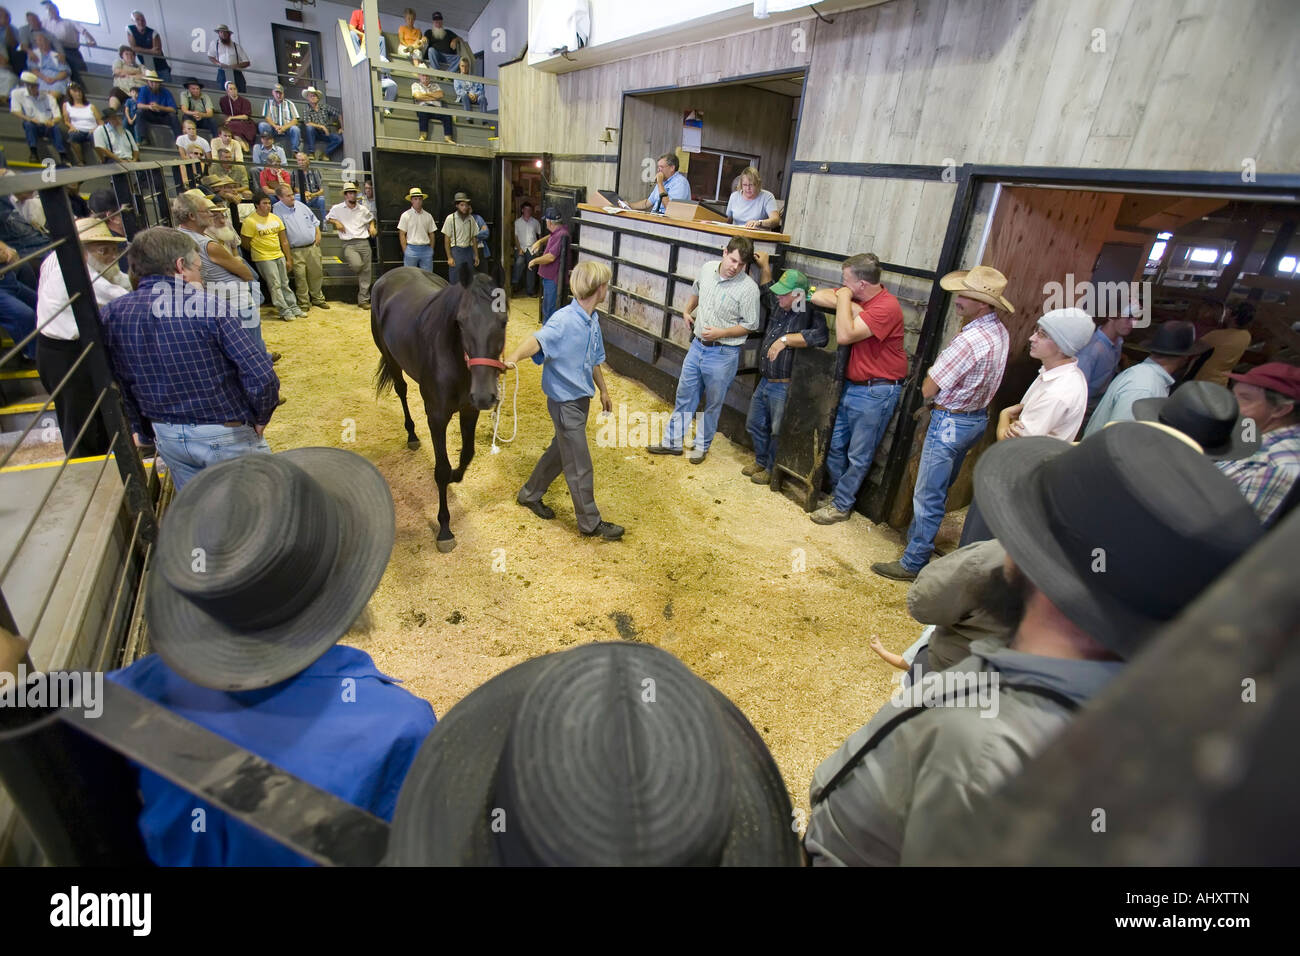 Amish farmers at horse auction - Stock Image